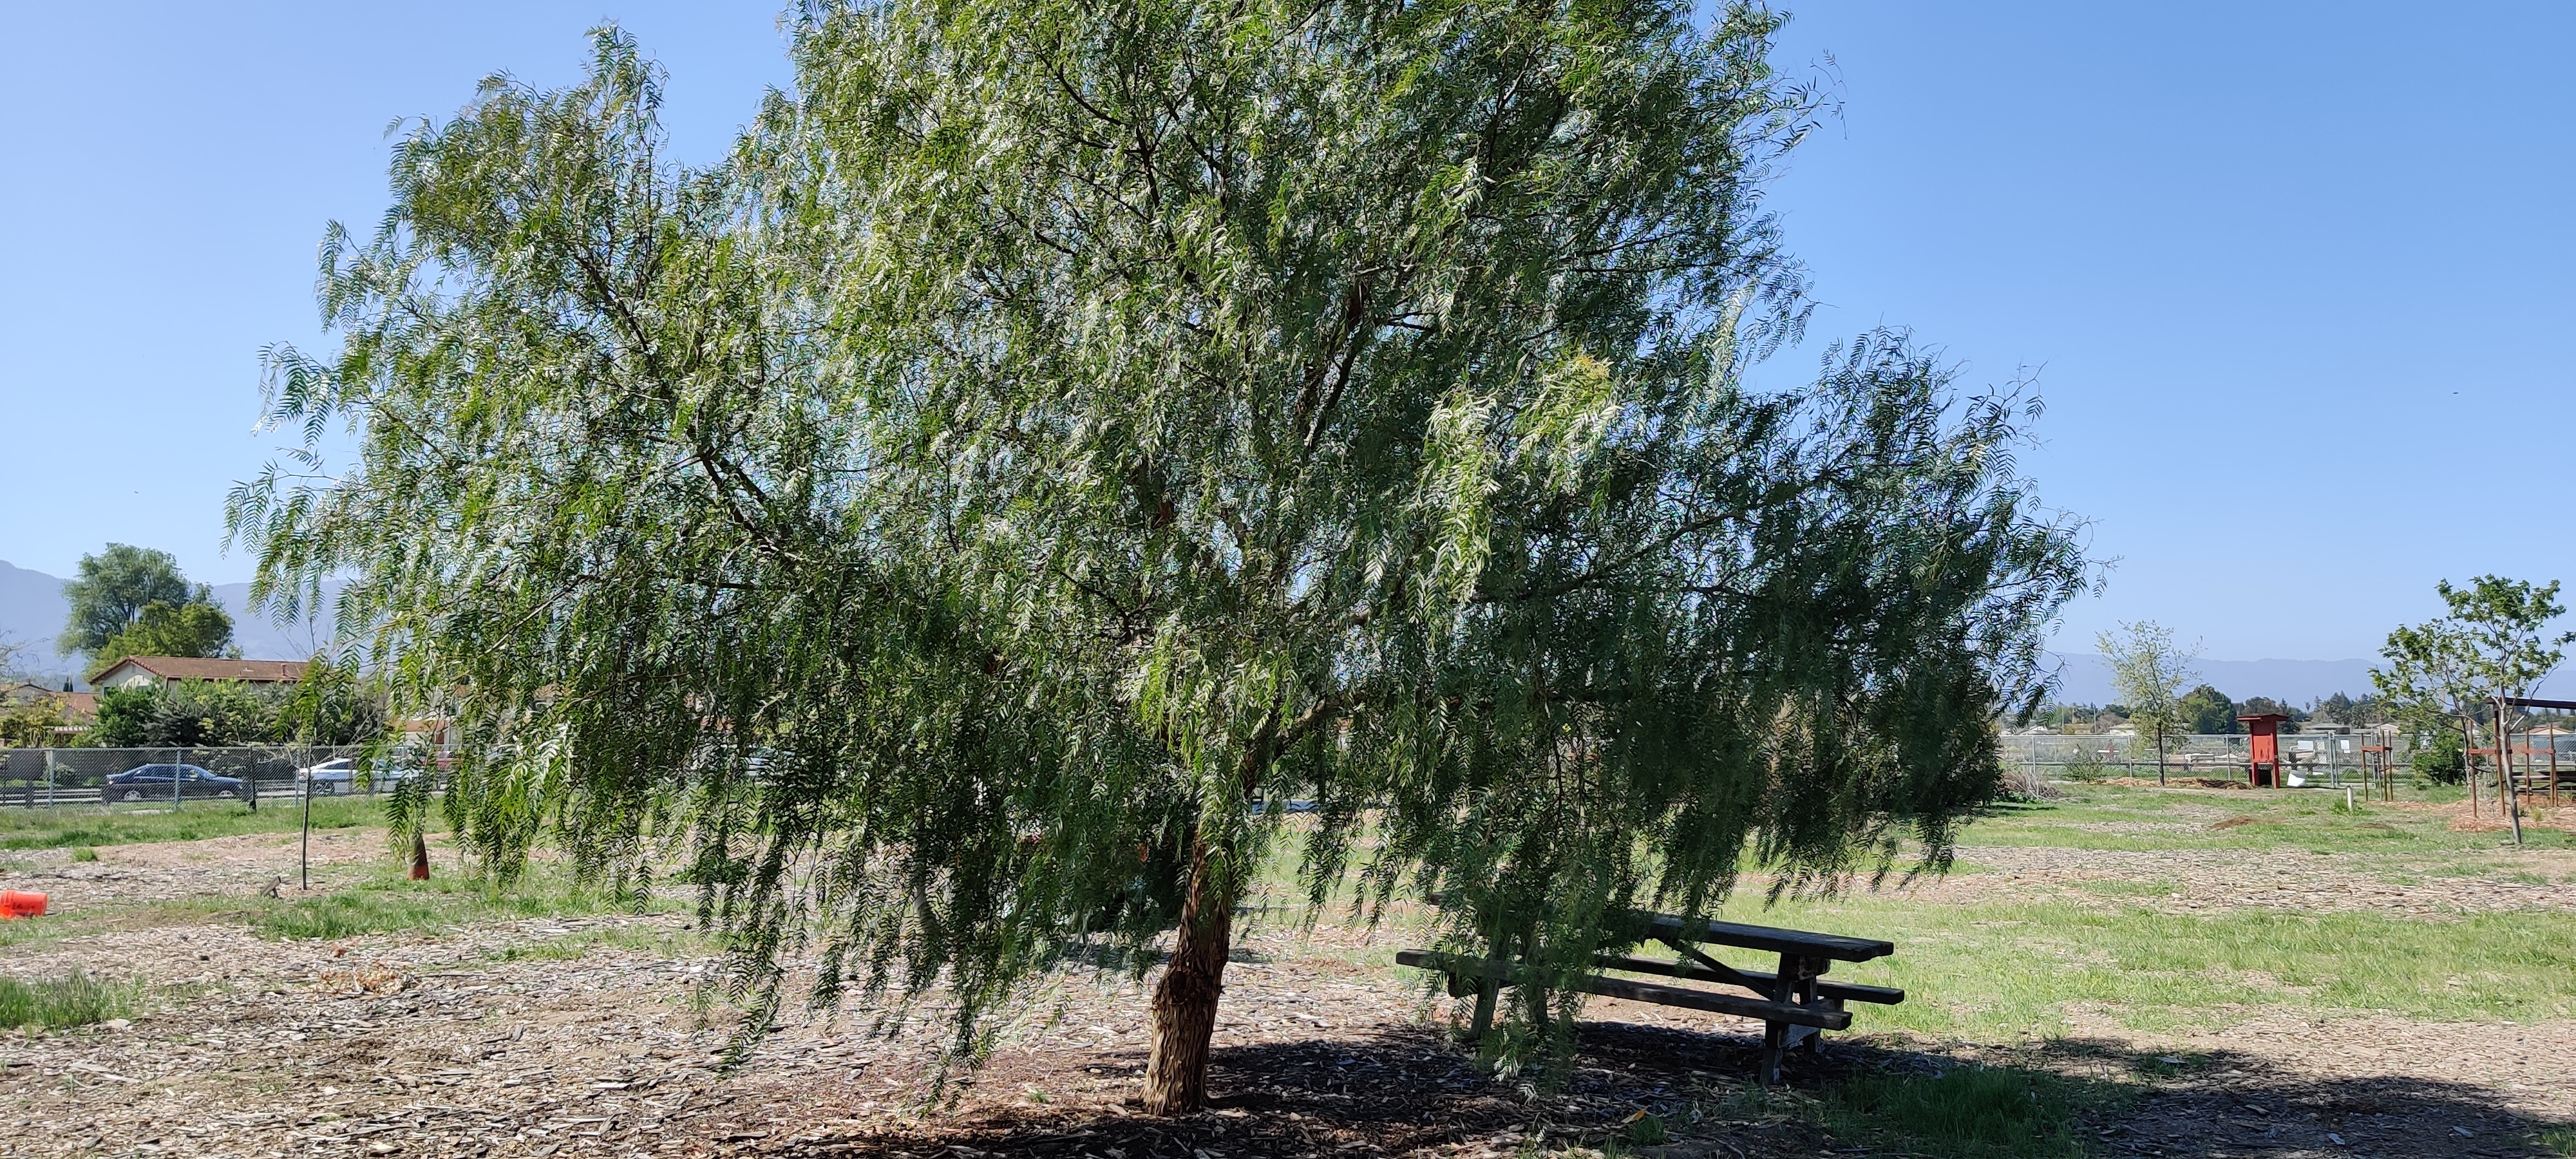 Large tree with picnic table in the shade